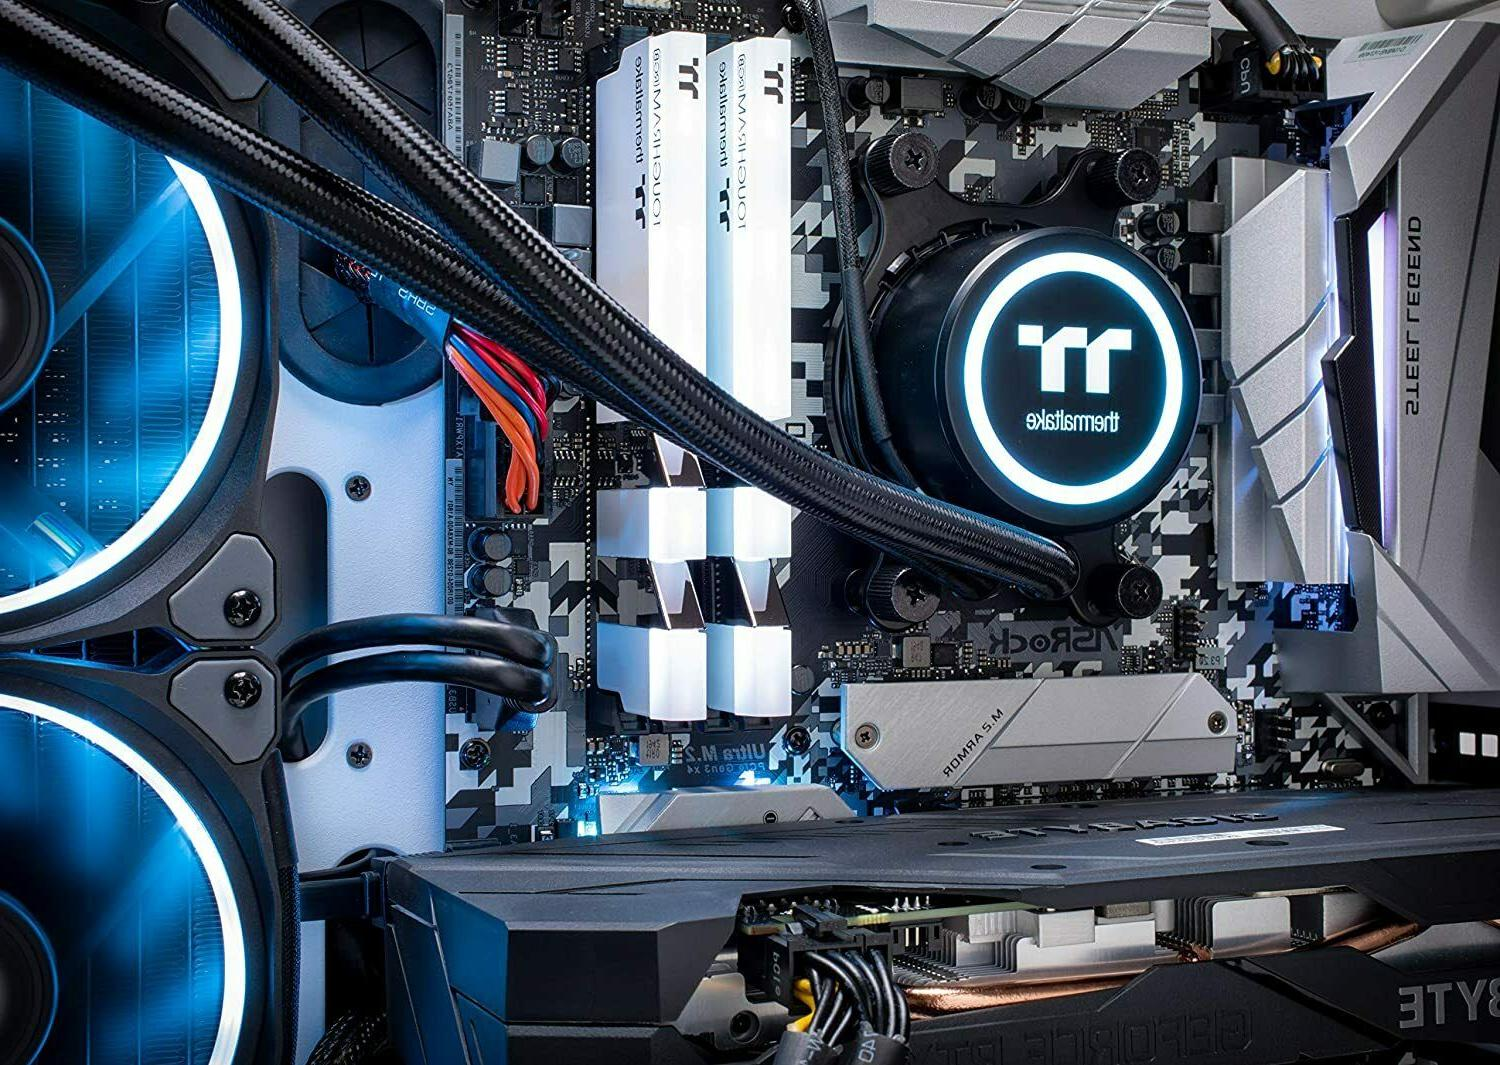 Thermaltake AIO Cooled Gaming PC AMD 5 3600